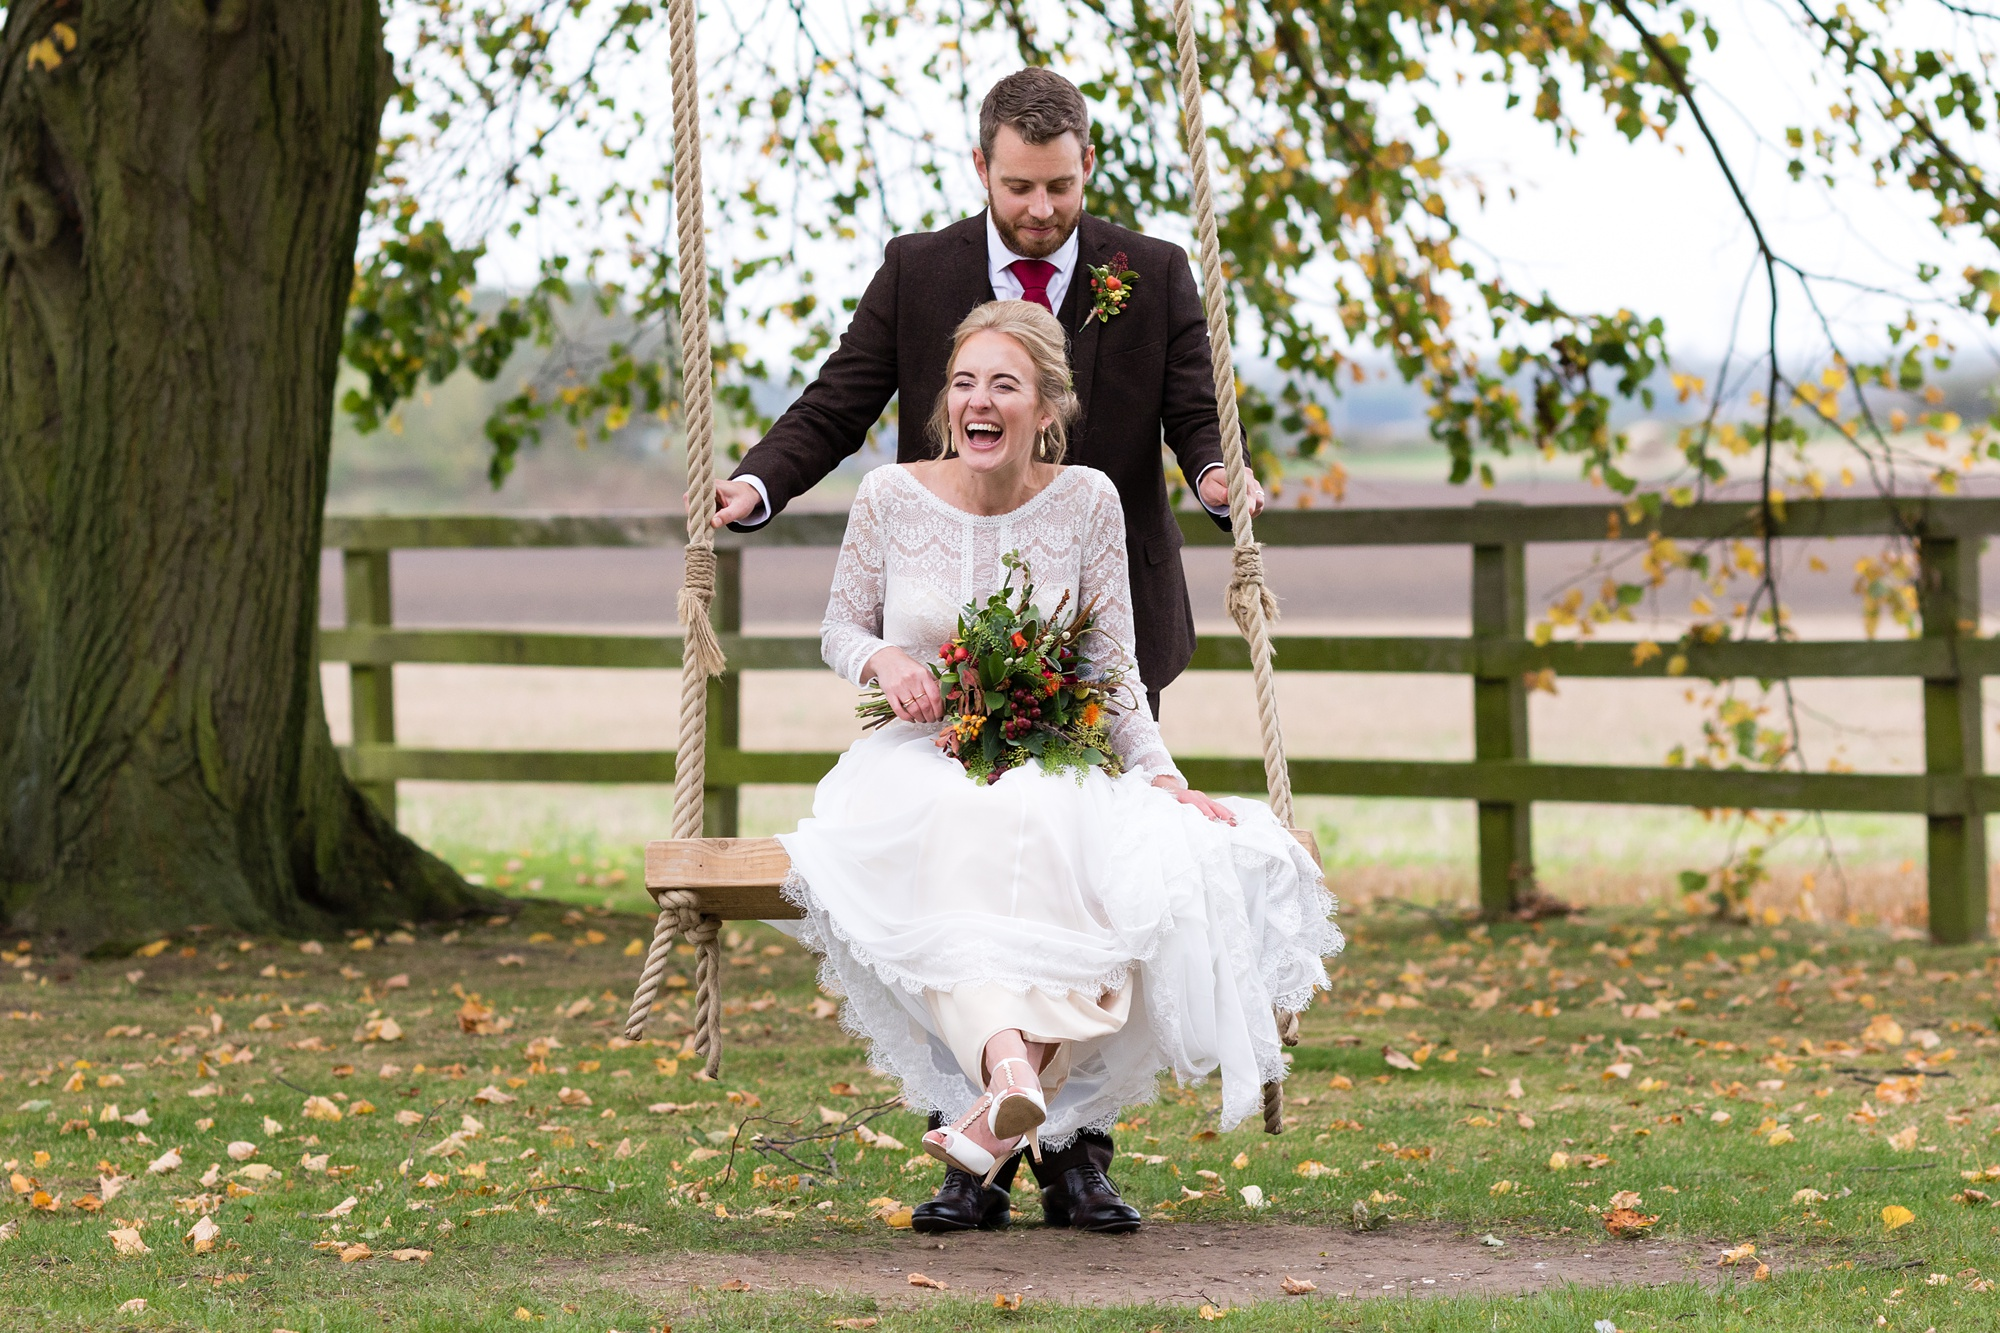 Barmbyfield Barn Wedding Photography Autumnal wedding bride and groom on swing